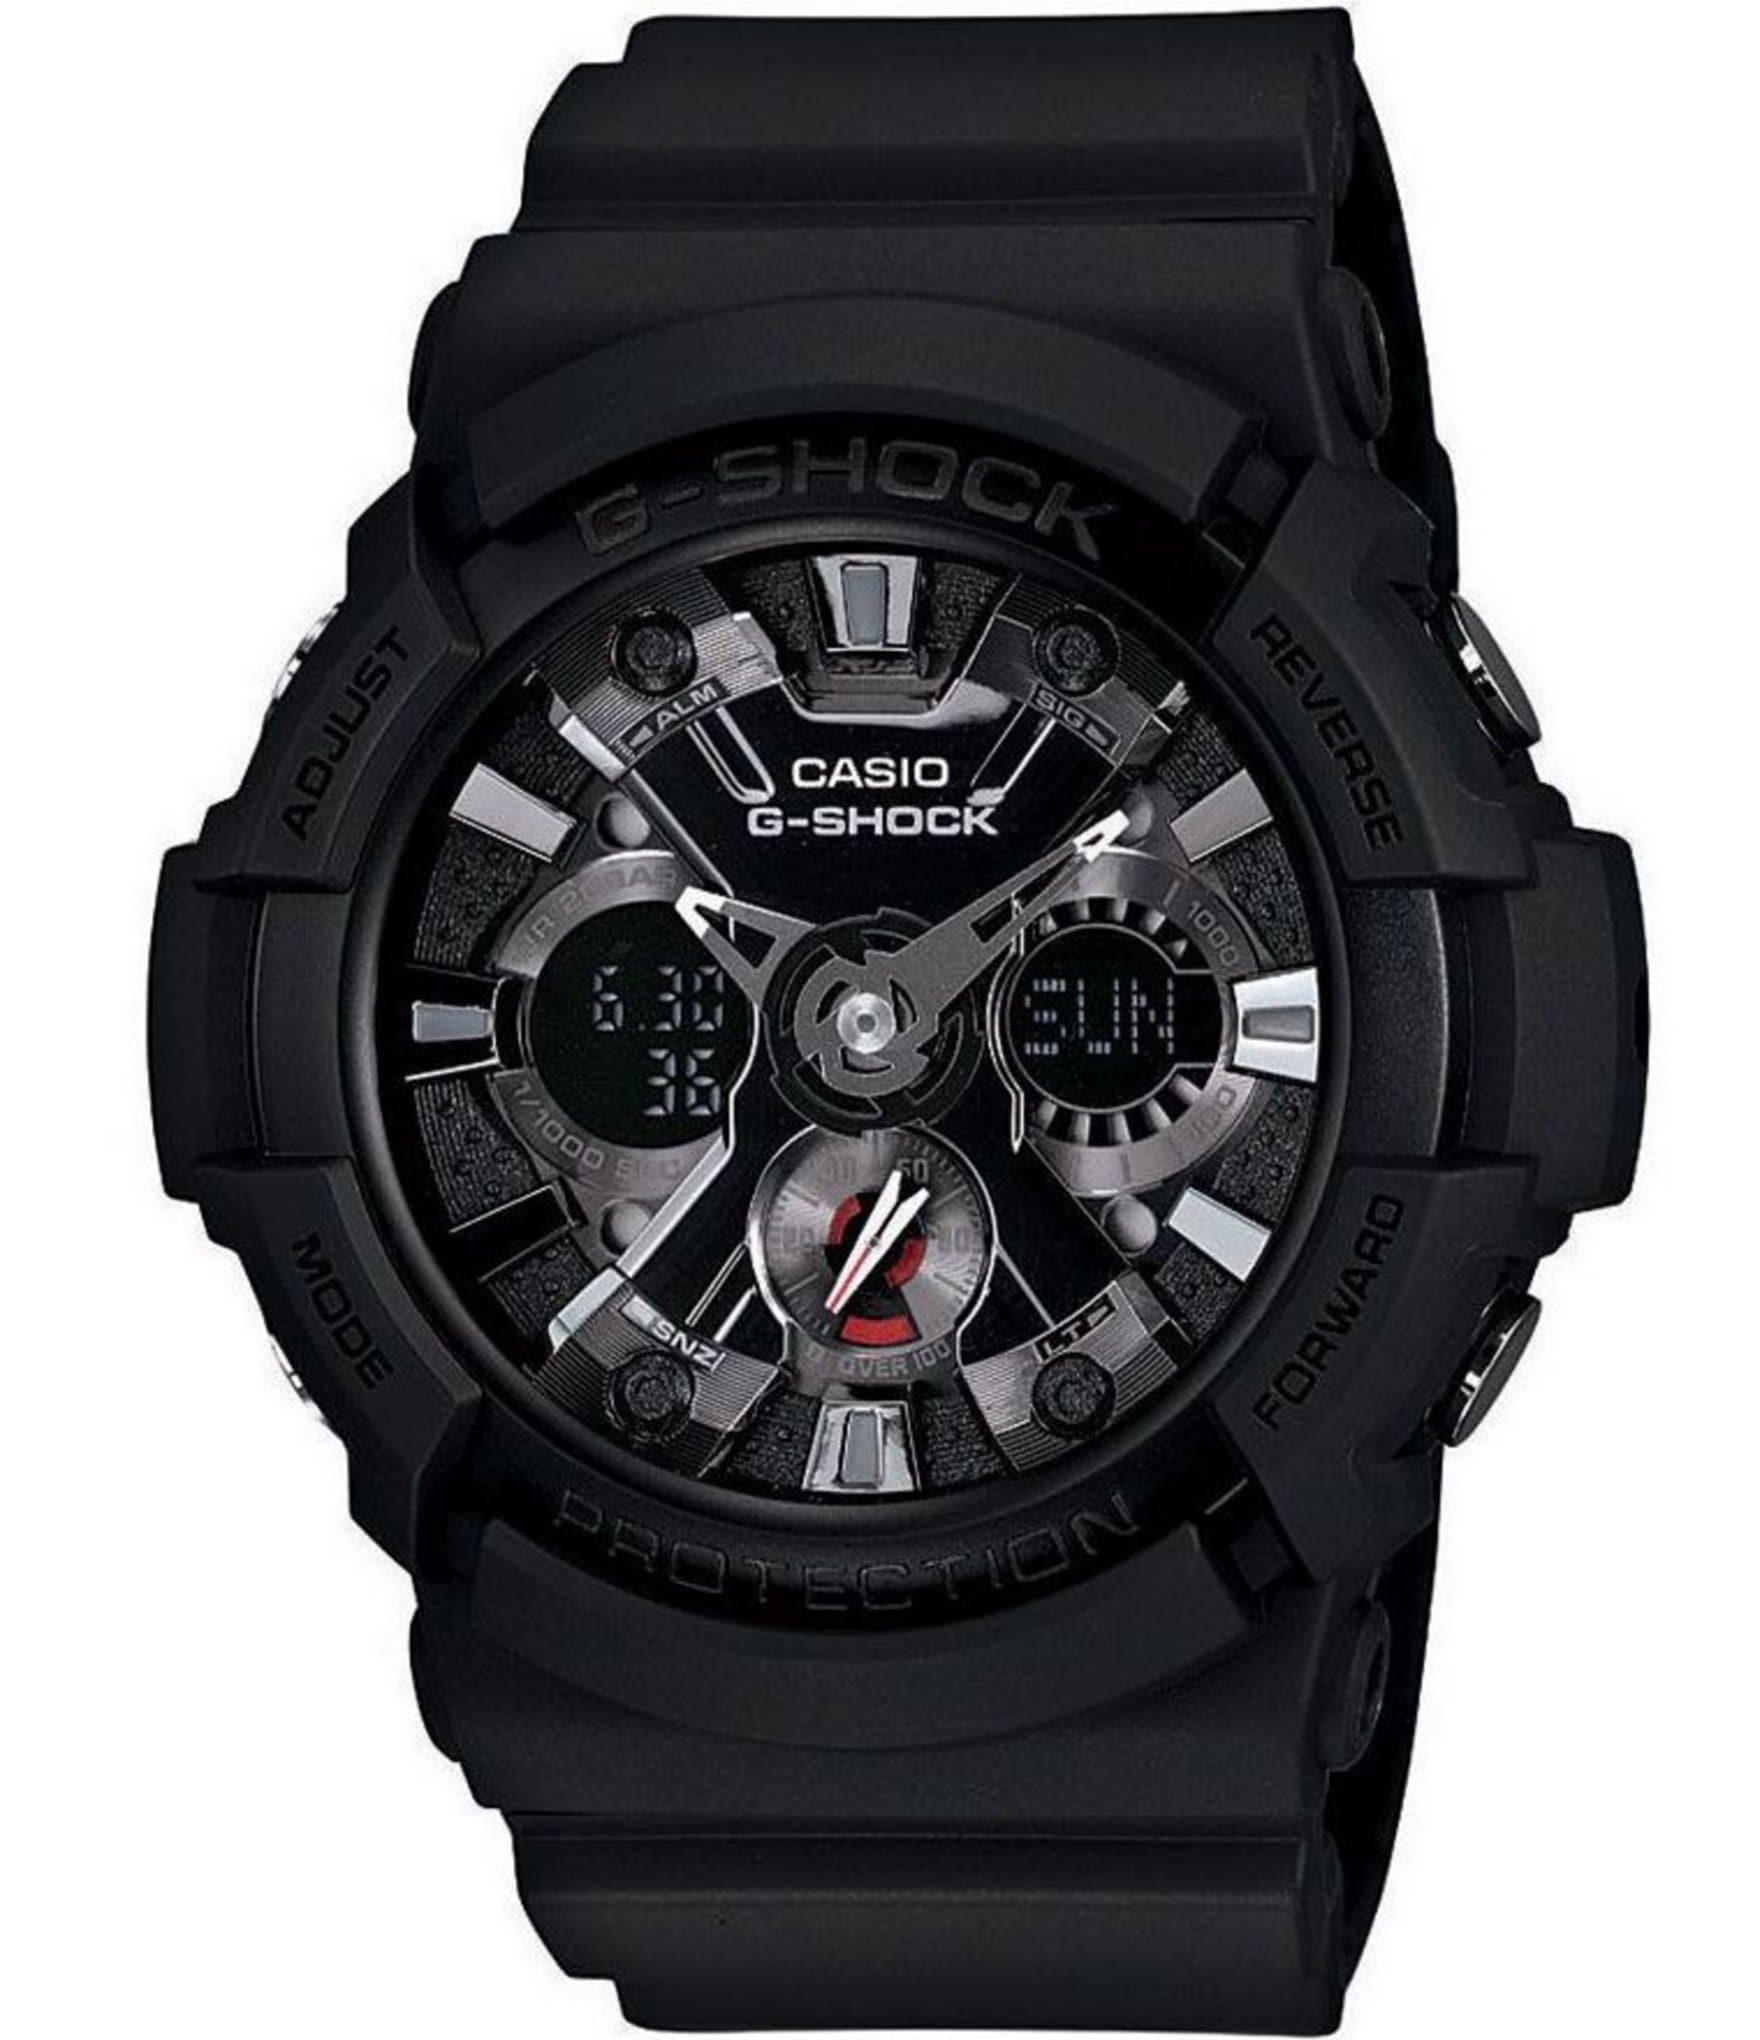 popular shop mens georgejrwatches luxury watches